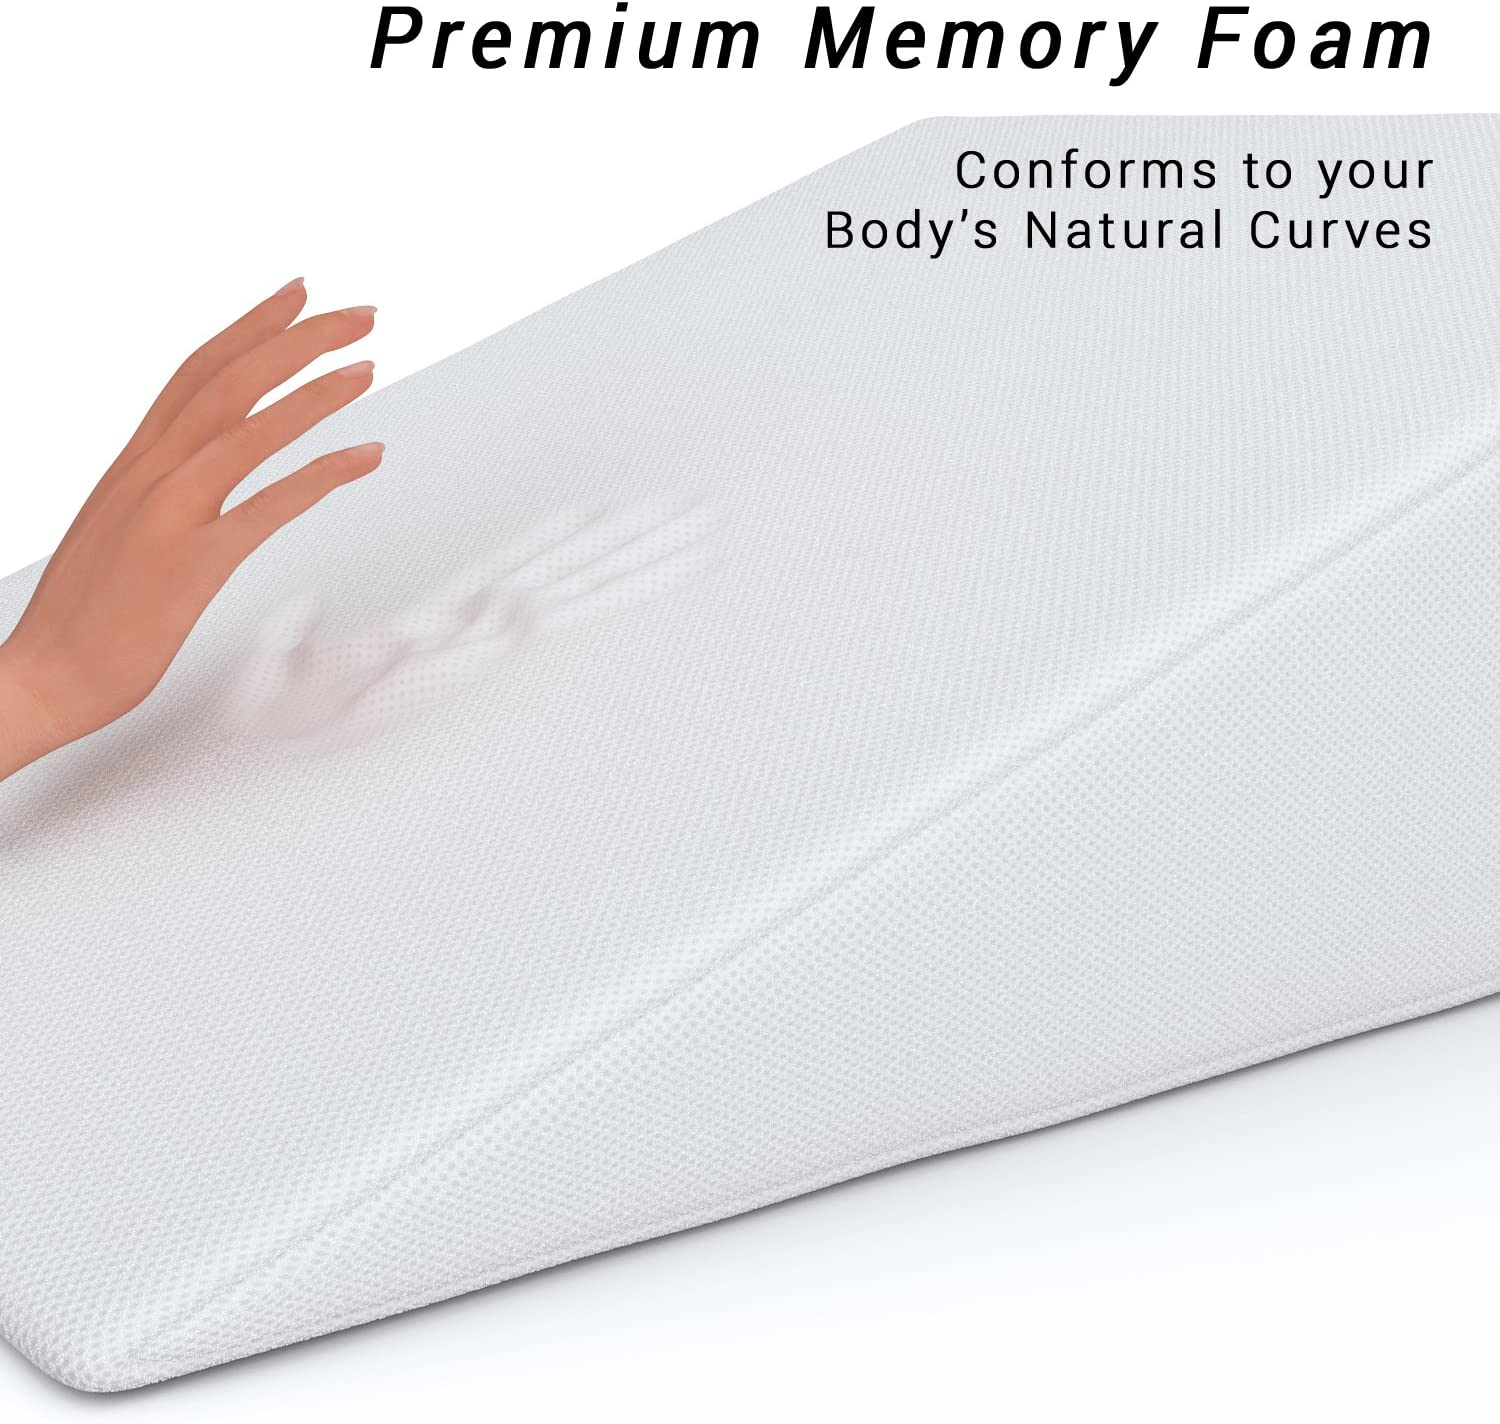 Specialty Medical Pillows Bed Wedge FitPlus Premium 1.5 Inches Memory Foam 2 X